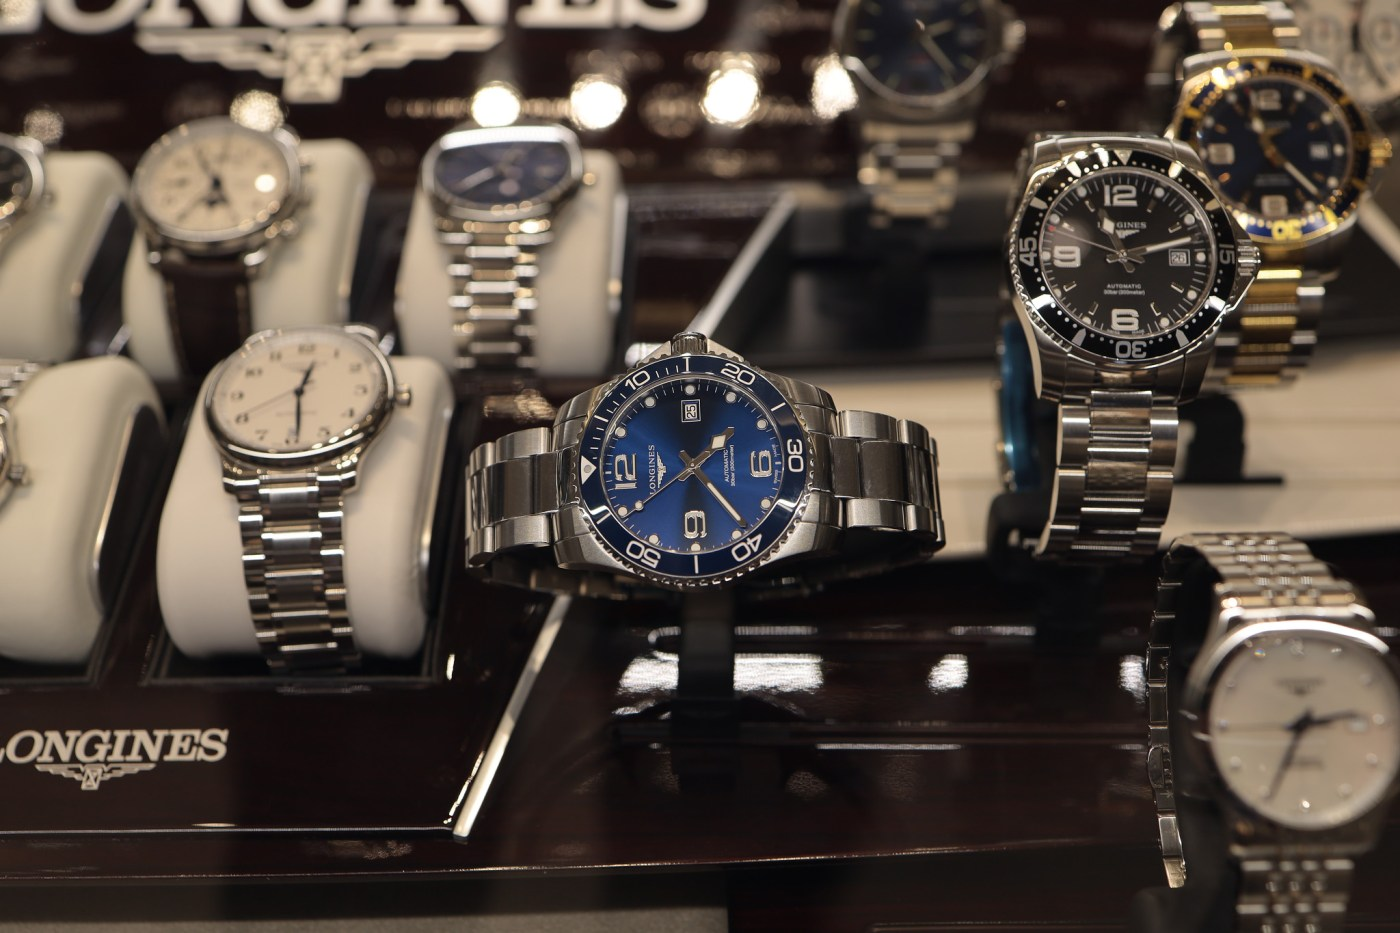 Longines display case Watches of Switzerland Hudson Yards 2019